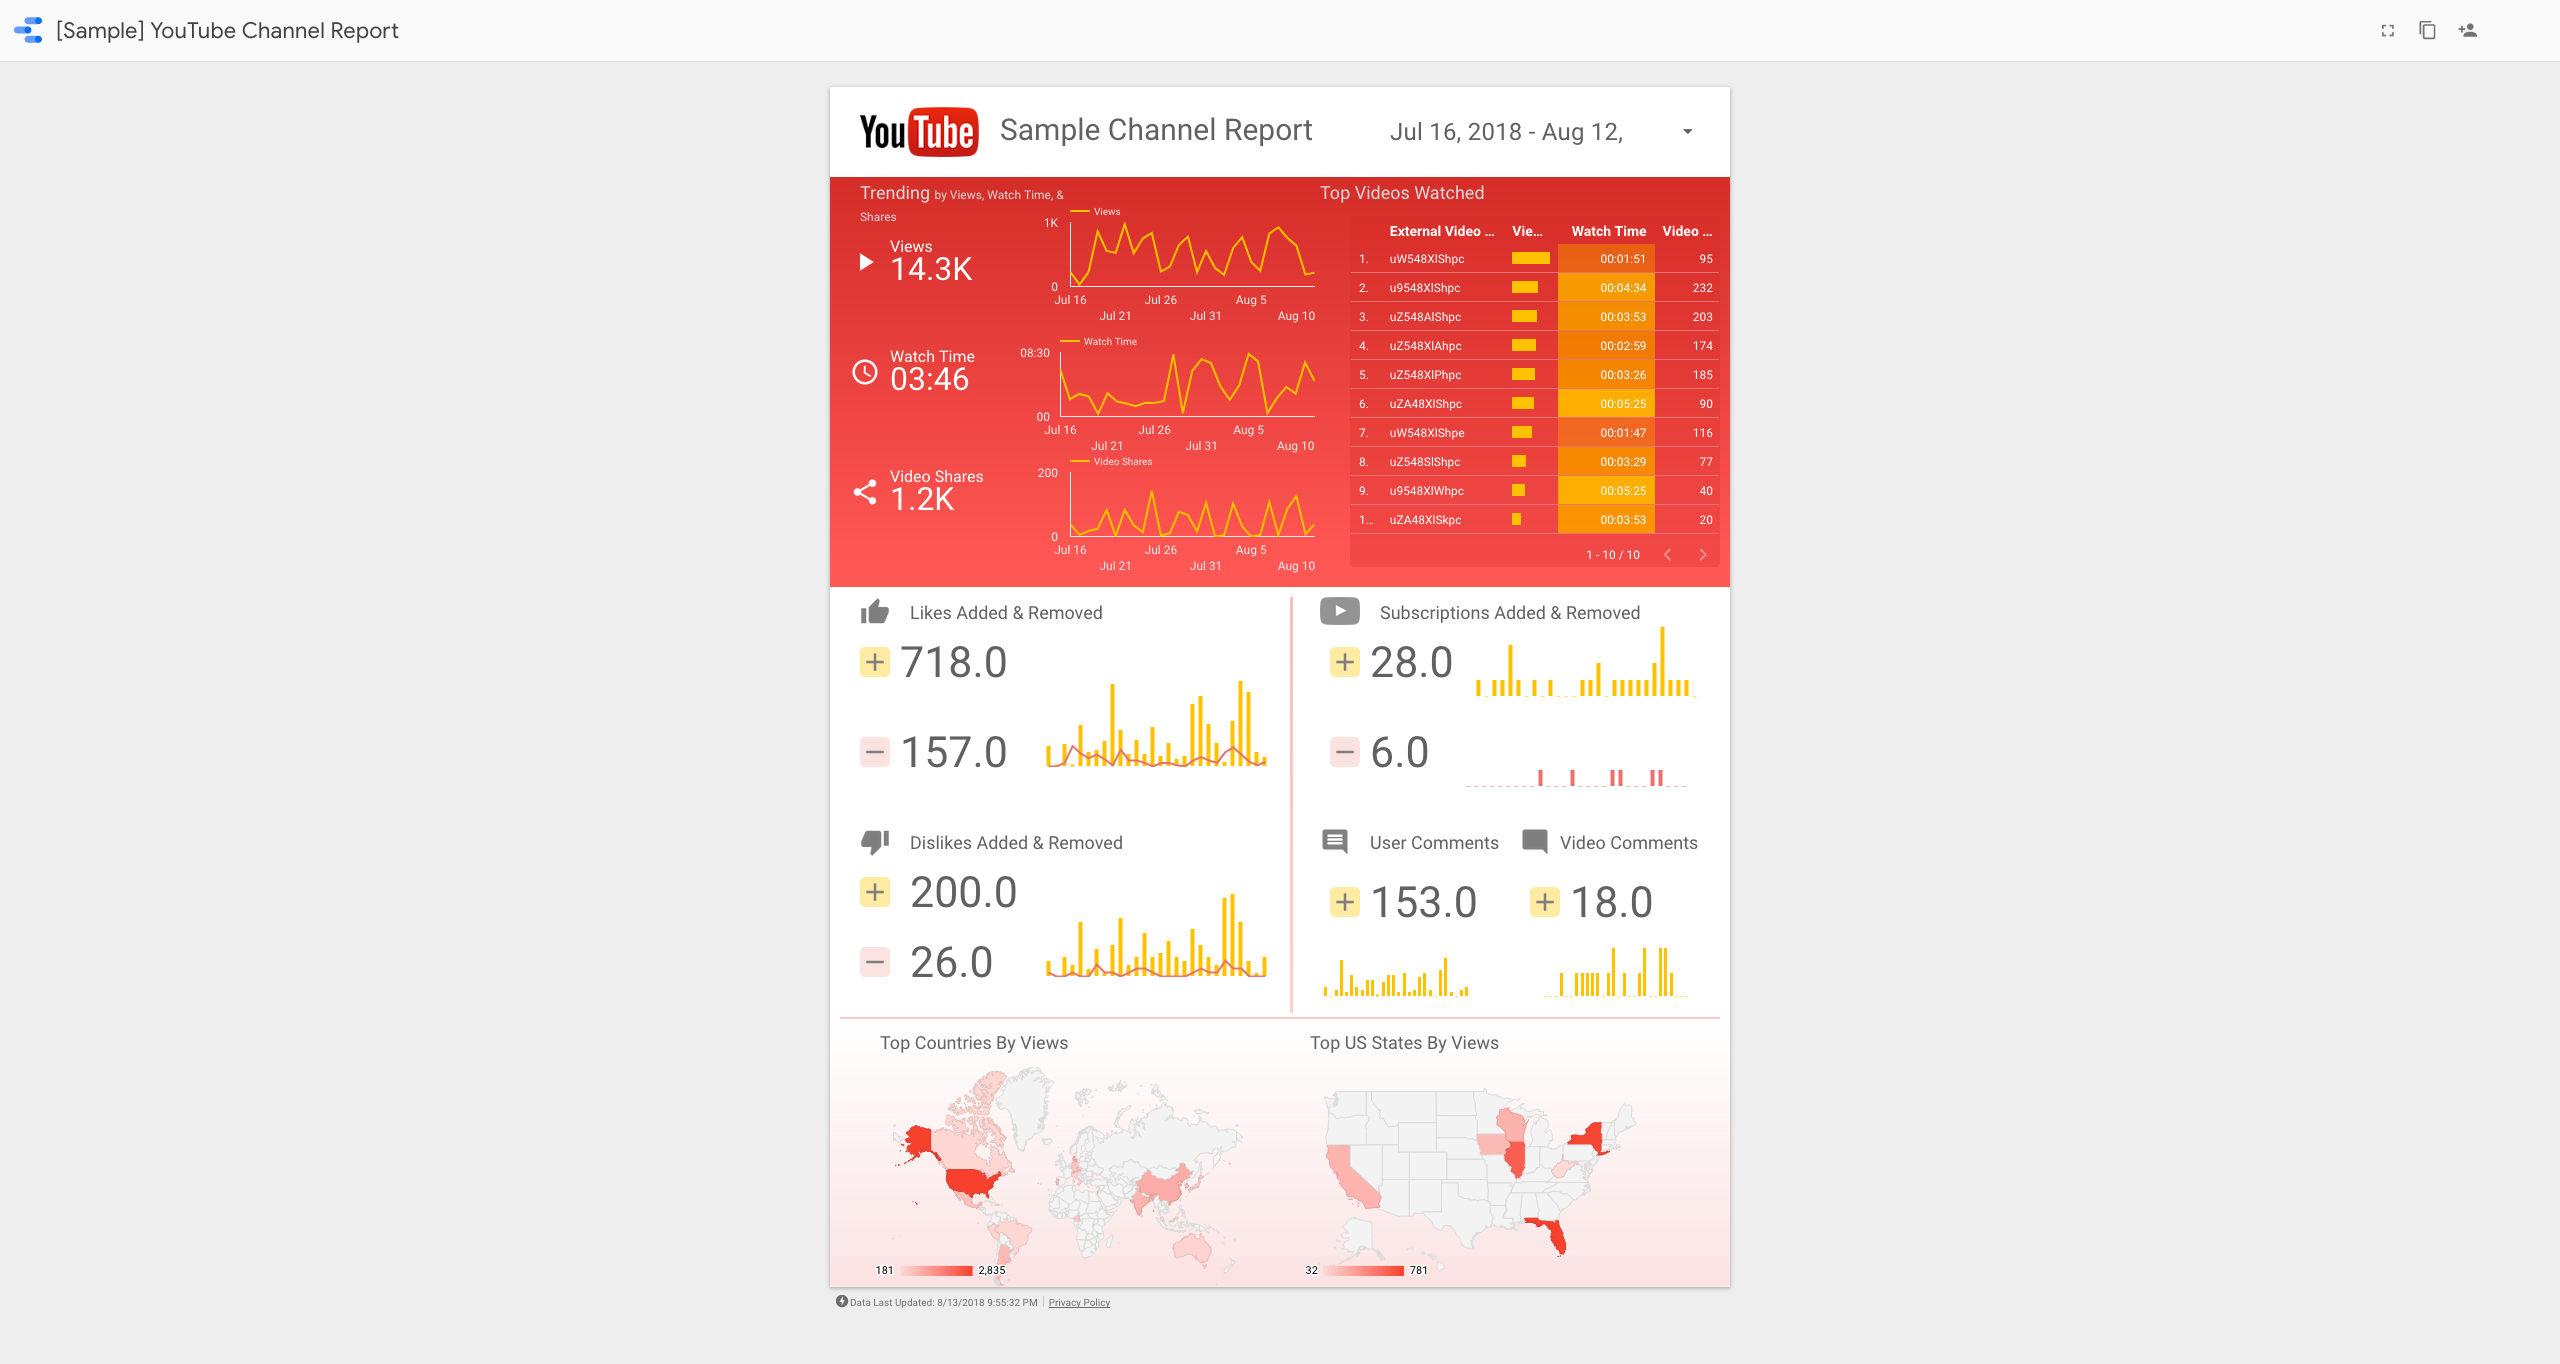 An example marketing template for a YouTube Channel Report detailing views, watch time, video shares, and additional core metrics